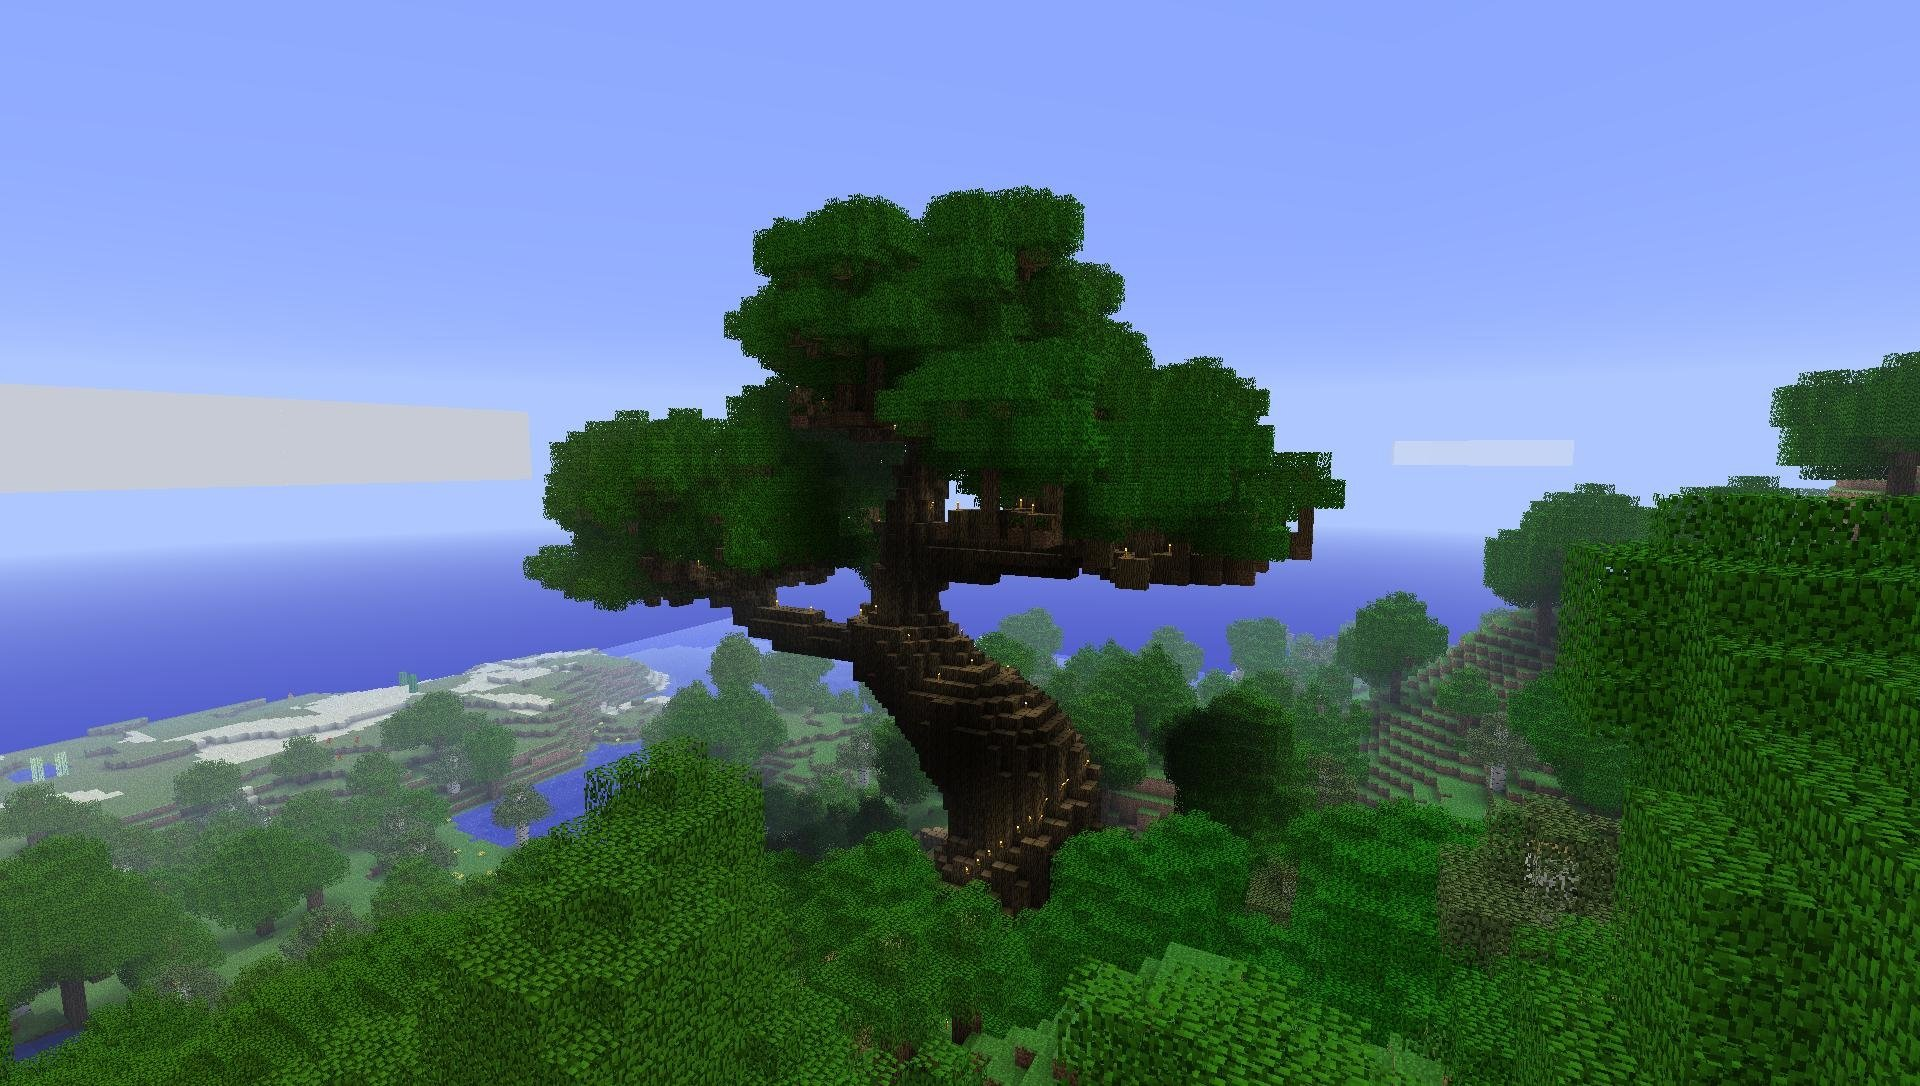 Cherry Blossom Tree Facts Minecraft Full Hd Wallpaper And Background Image